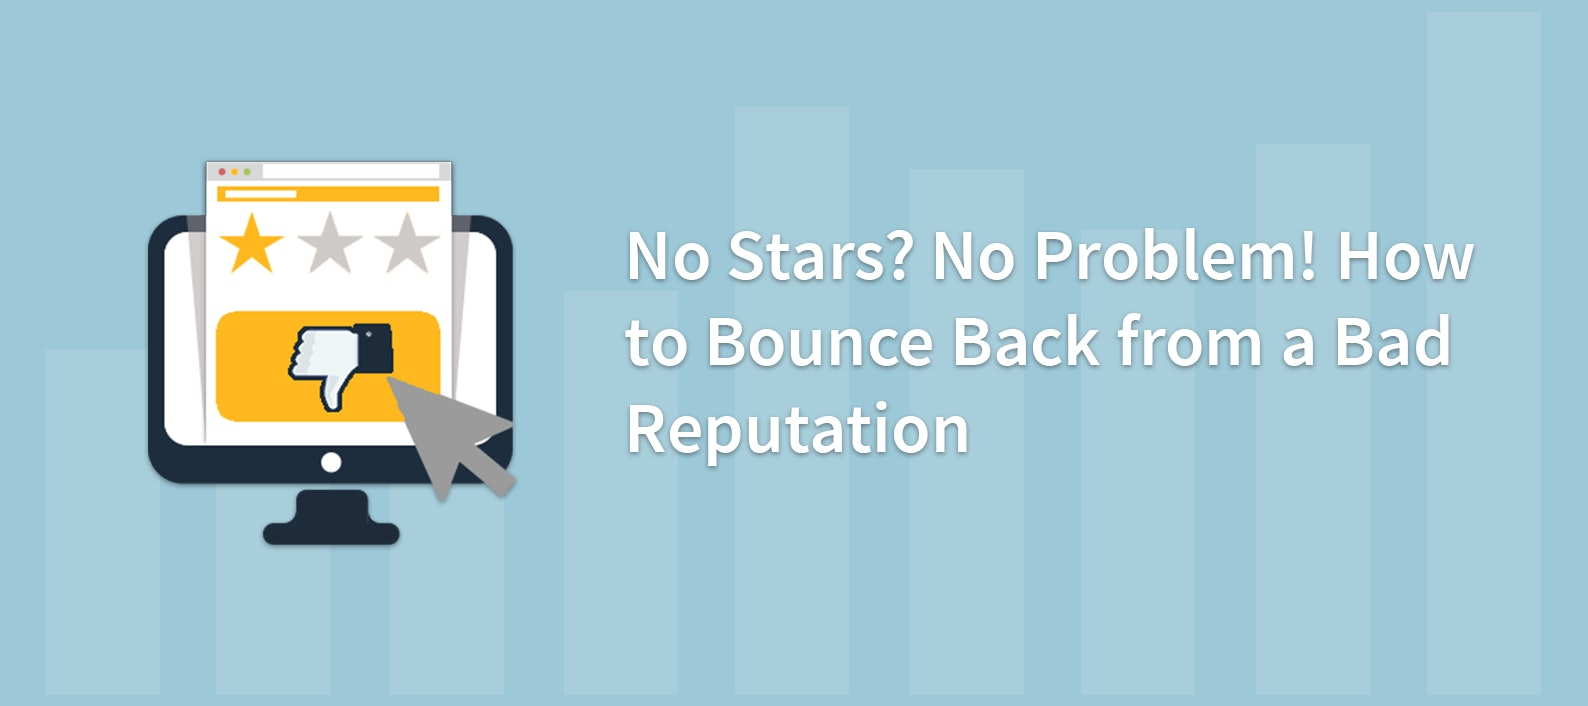 No Stars? No Problem! How to Bounce Back from a Bad Reputation